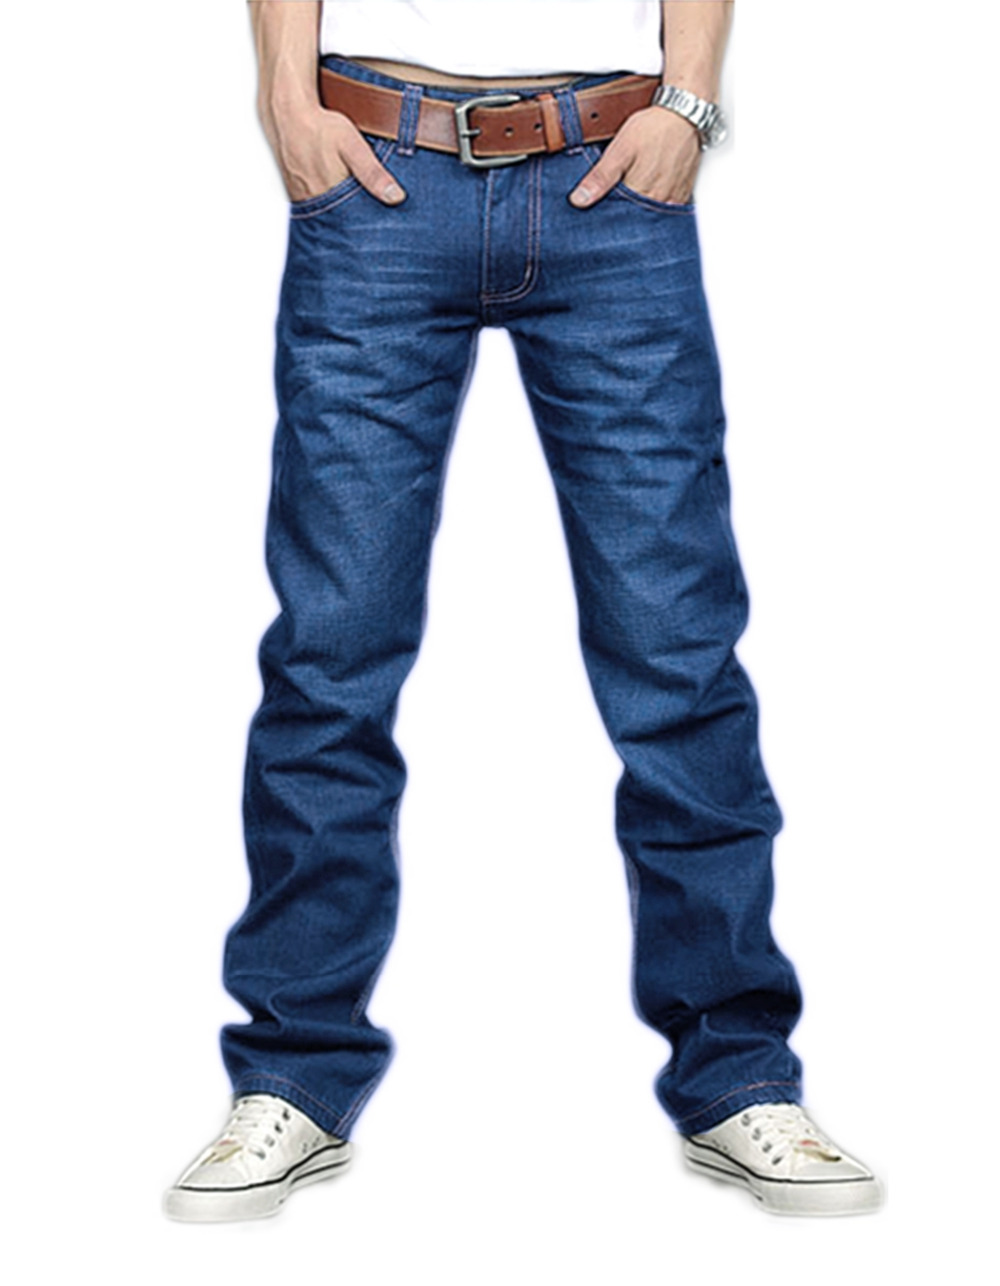 ФОТО Fashion Men Slim Fit Classic Jeans Trousers New Straight Leg Blue Color for Spring Winter